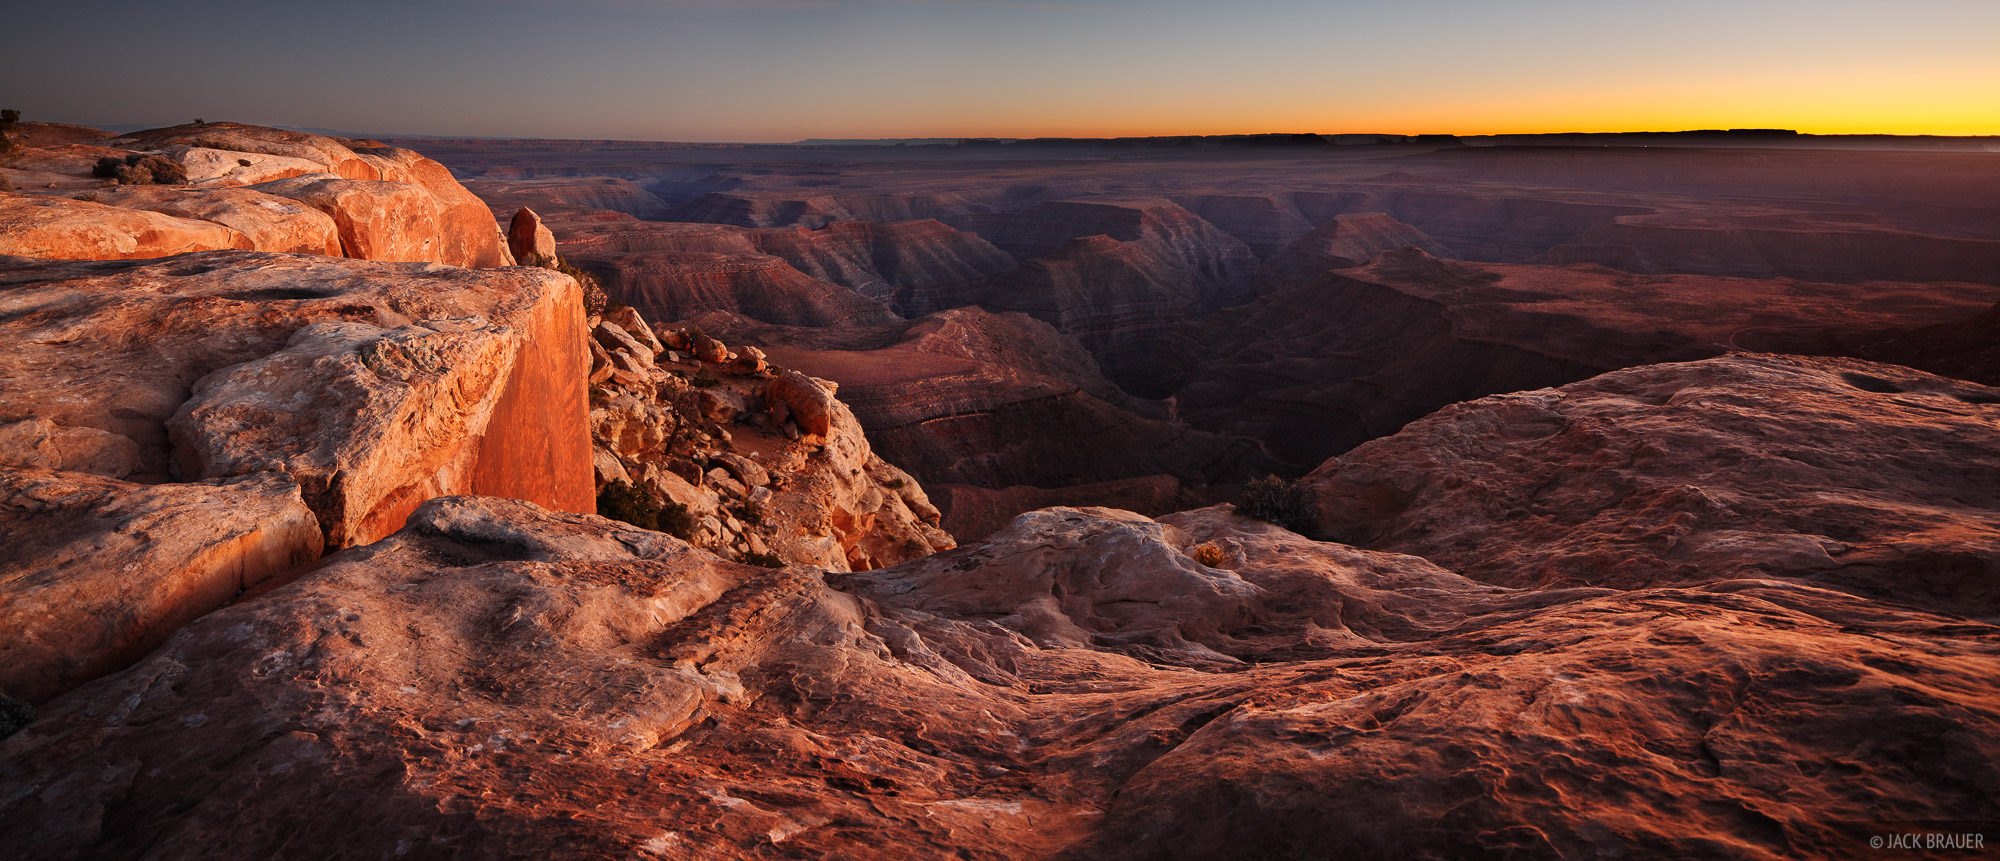 Cedar Mesa, Utah, Goosenecks, San Juan River, sunset, panorama, photo